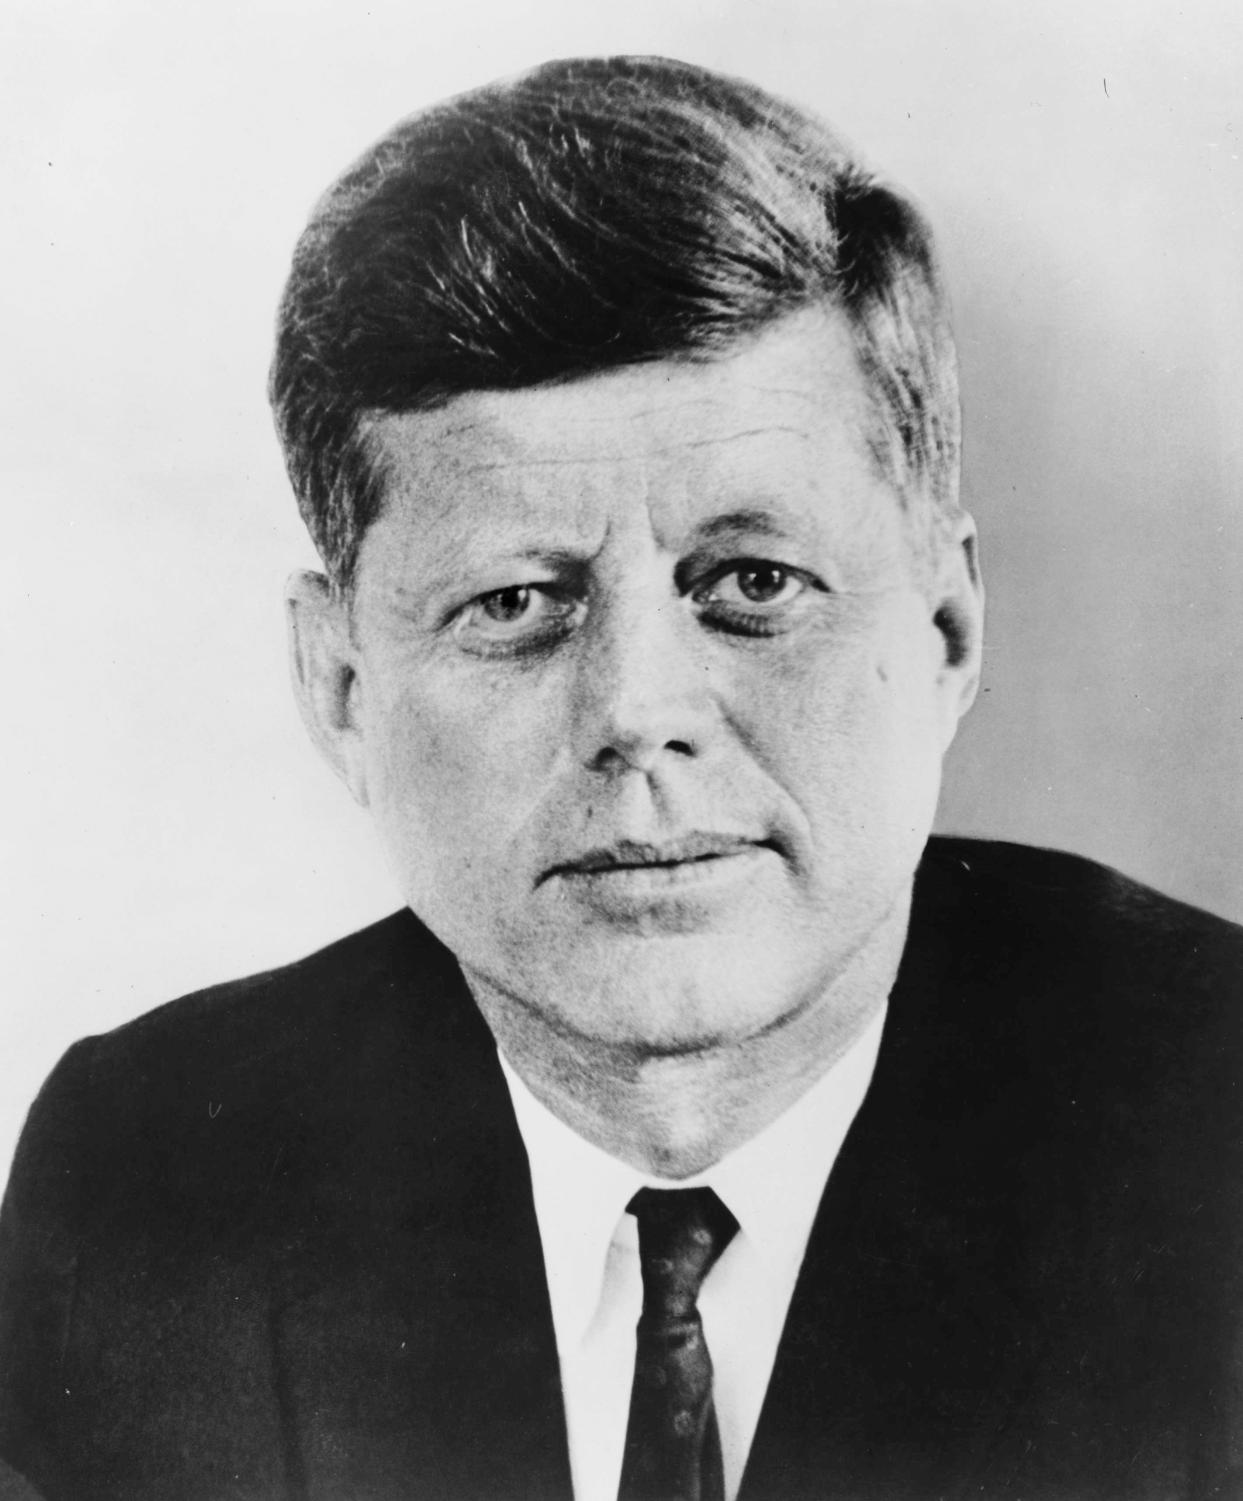 This is a picture of former US President, John F. Kennedy.